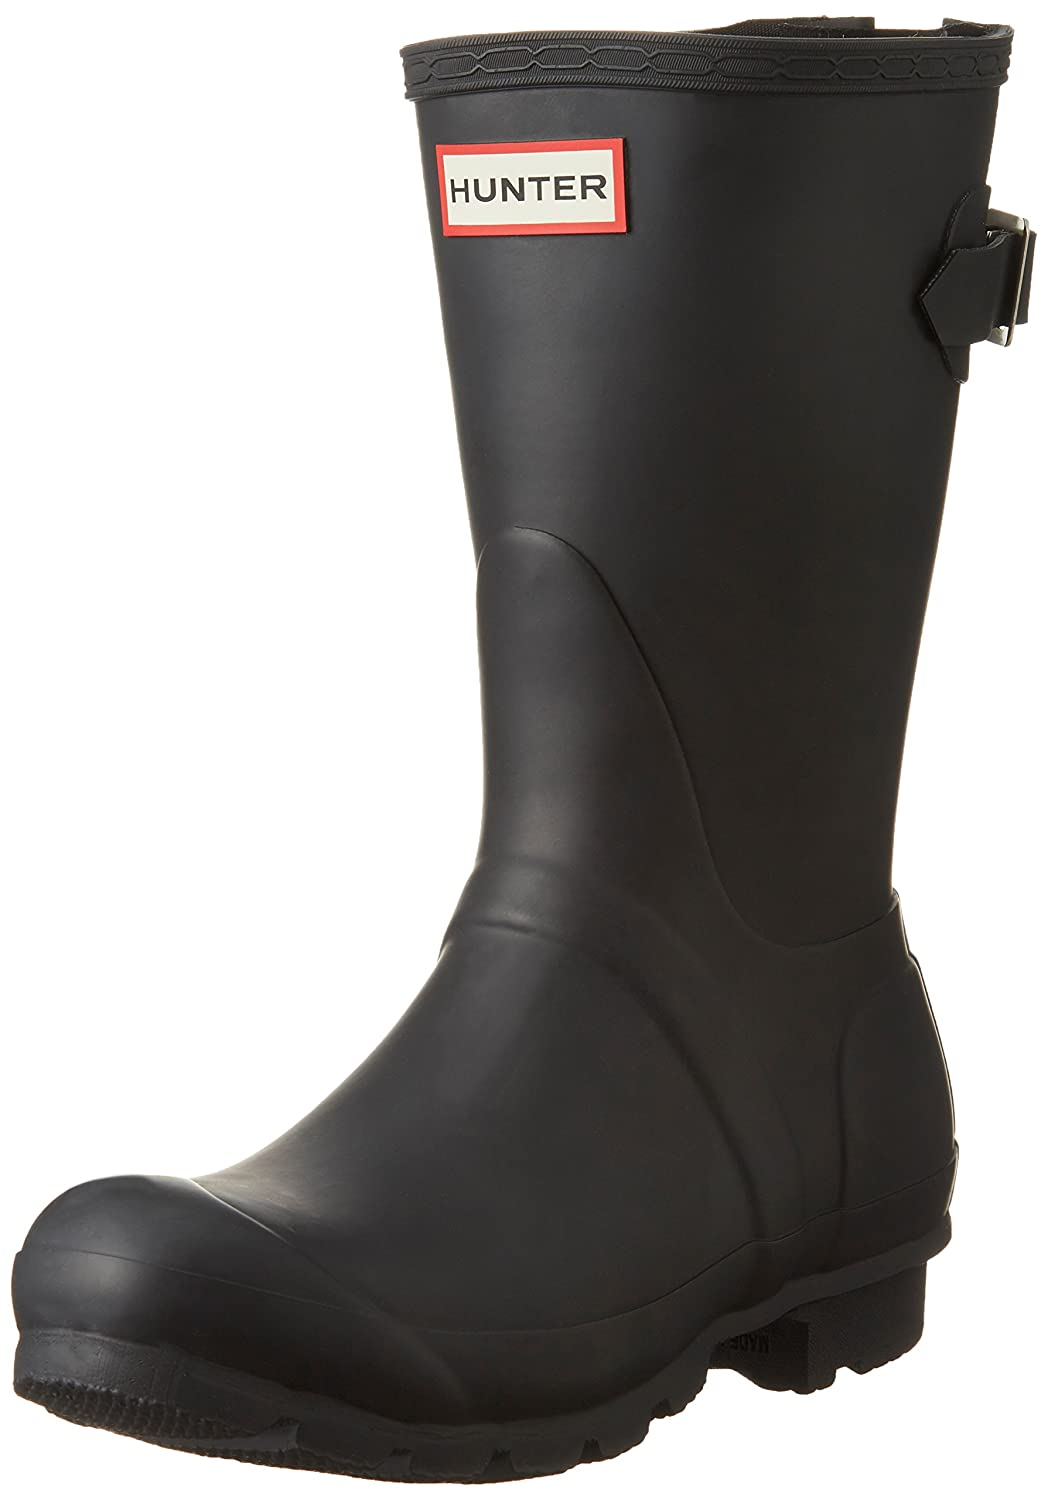 Hunter Women's Original Short Back Adjustable Rain Boot B00NU708DE 6 B(M) US|Black